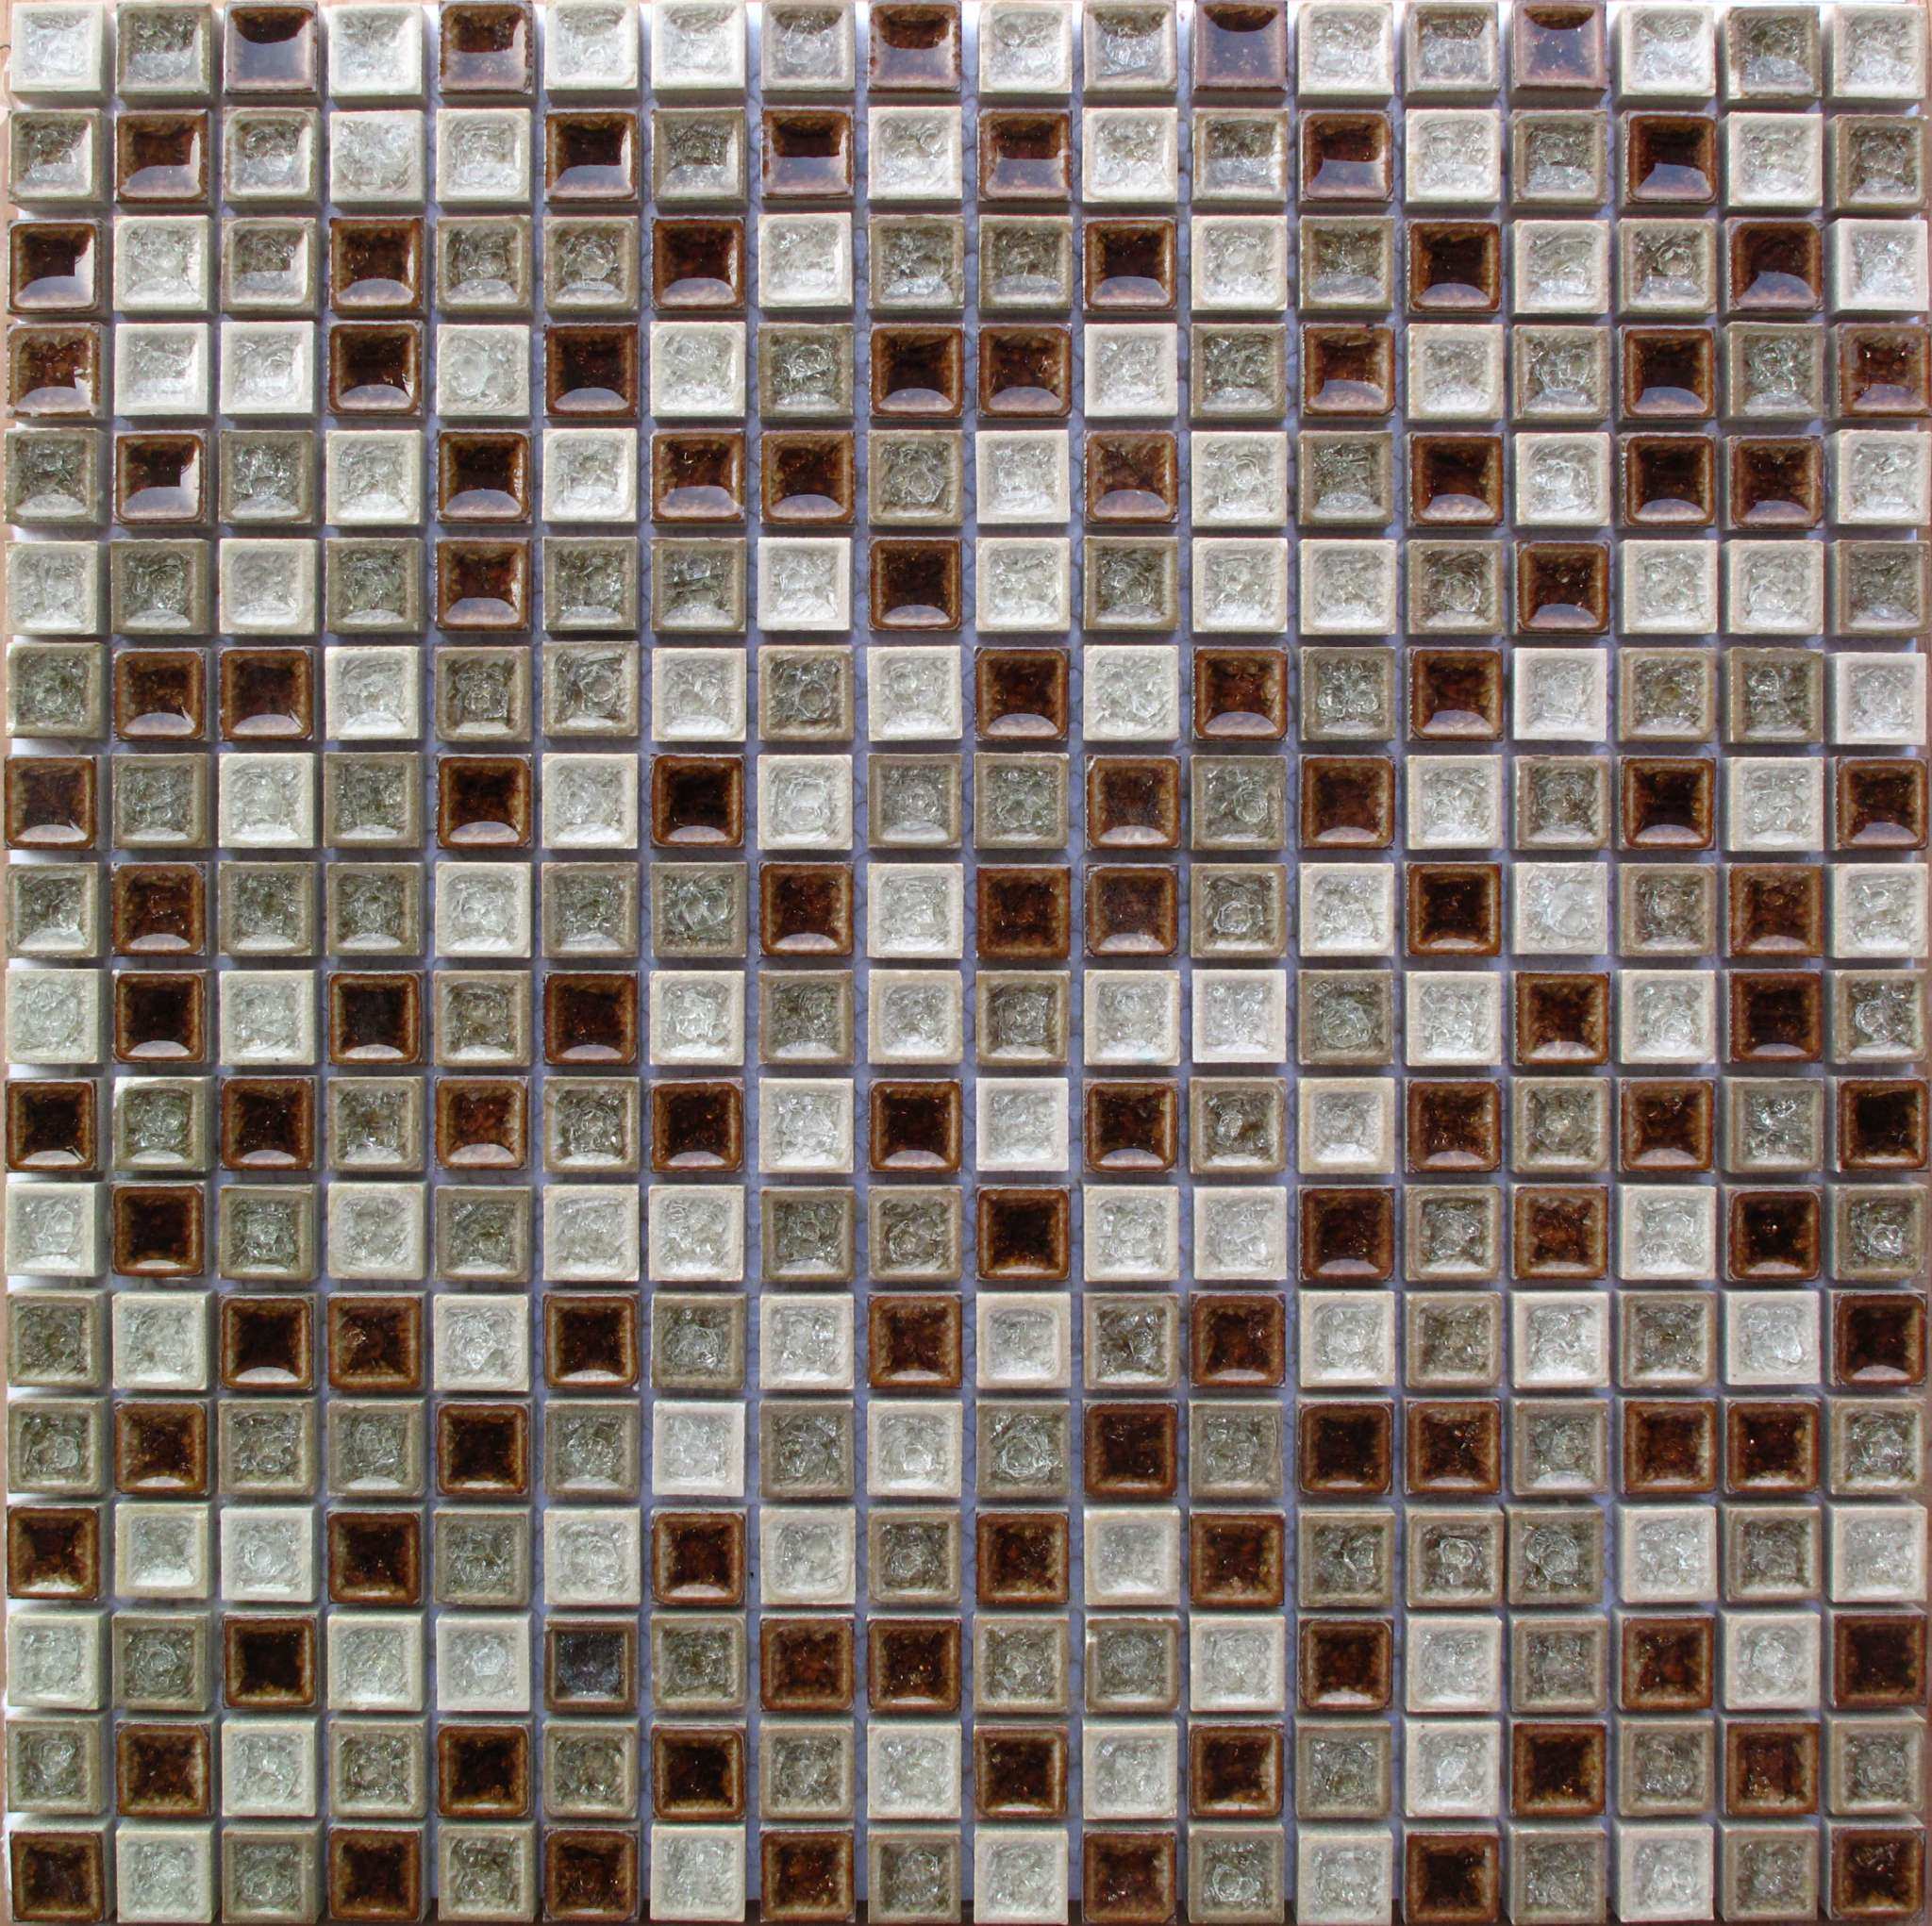 http://www.voglusmosaic.com/uploadfiles/category/terto-ceramic-mosaic.jpg